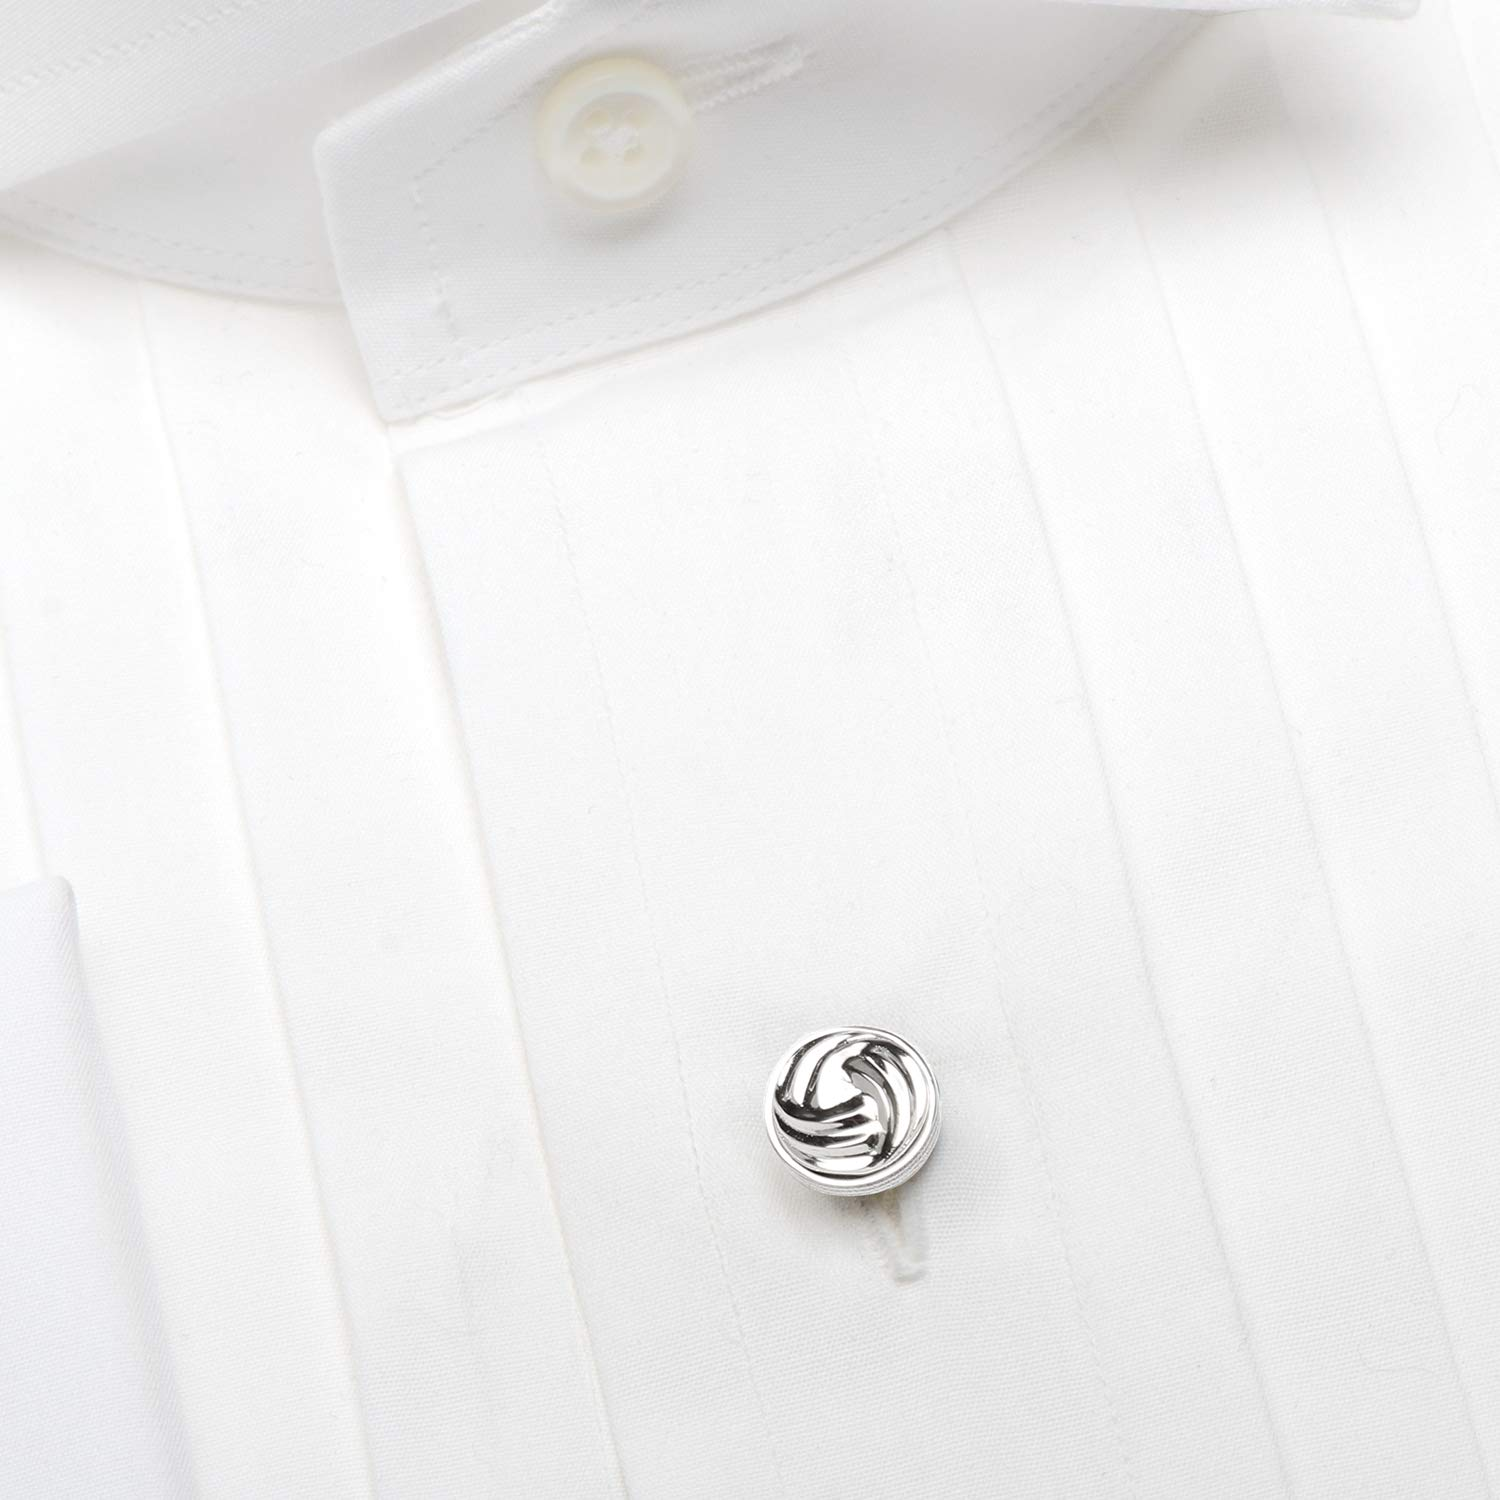 Ox and Bull Trading Co. Modern Knot Sterling Silver Studs by Ox and Bull Trading Company (Image #3)